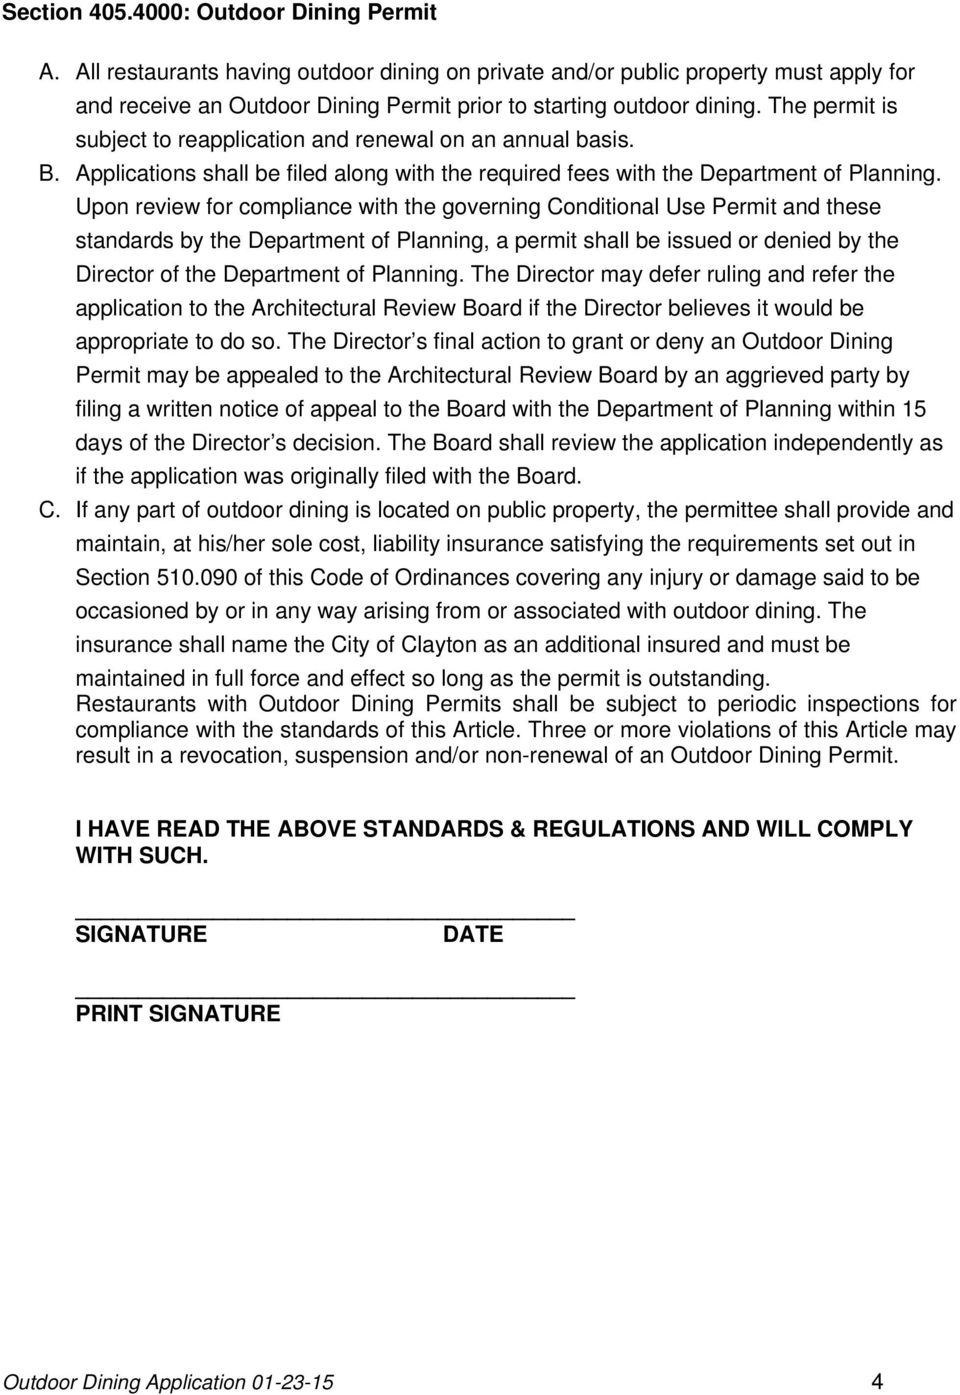 Upon review for compliance with the governing Conditional Use Permit and these standards by the Department of Planning, a permit shall be issued or denied by the Director of the Department of